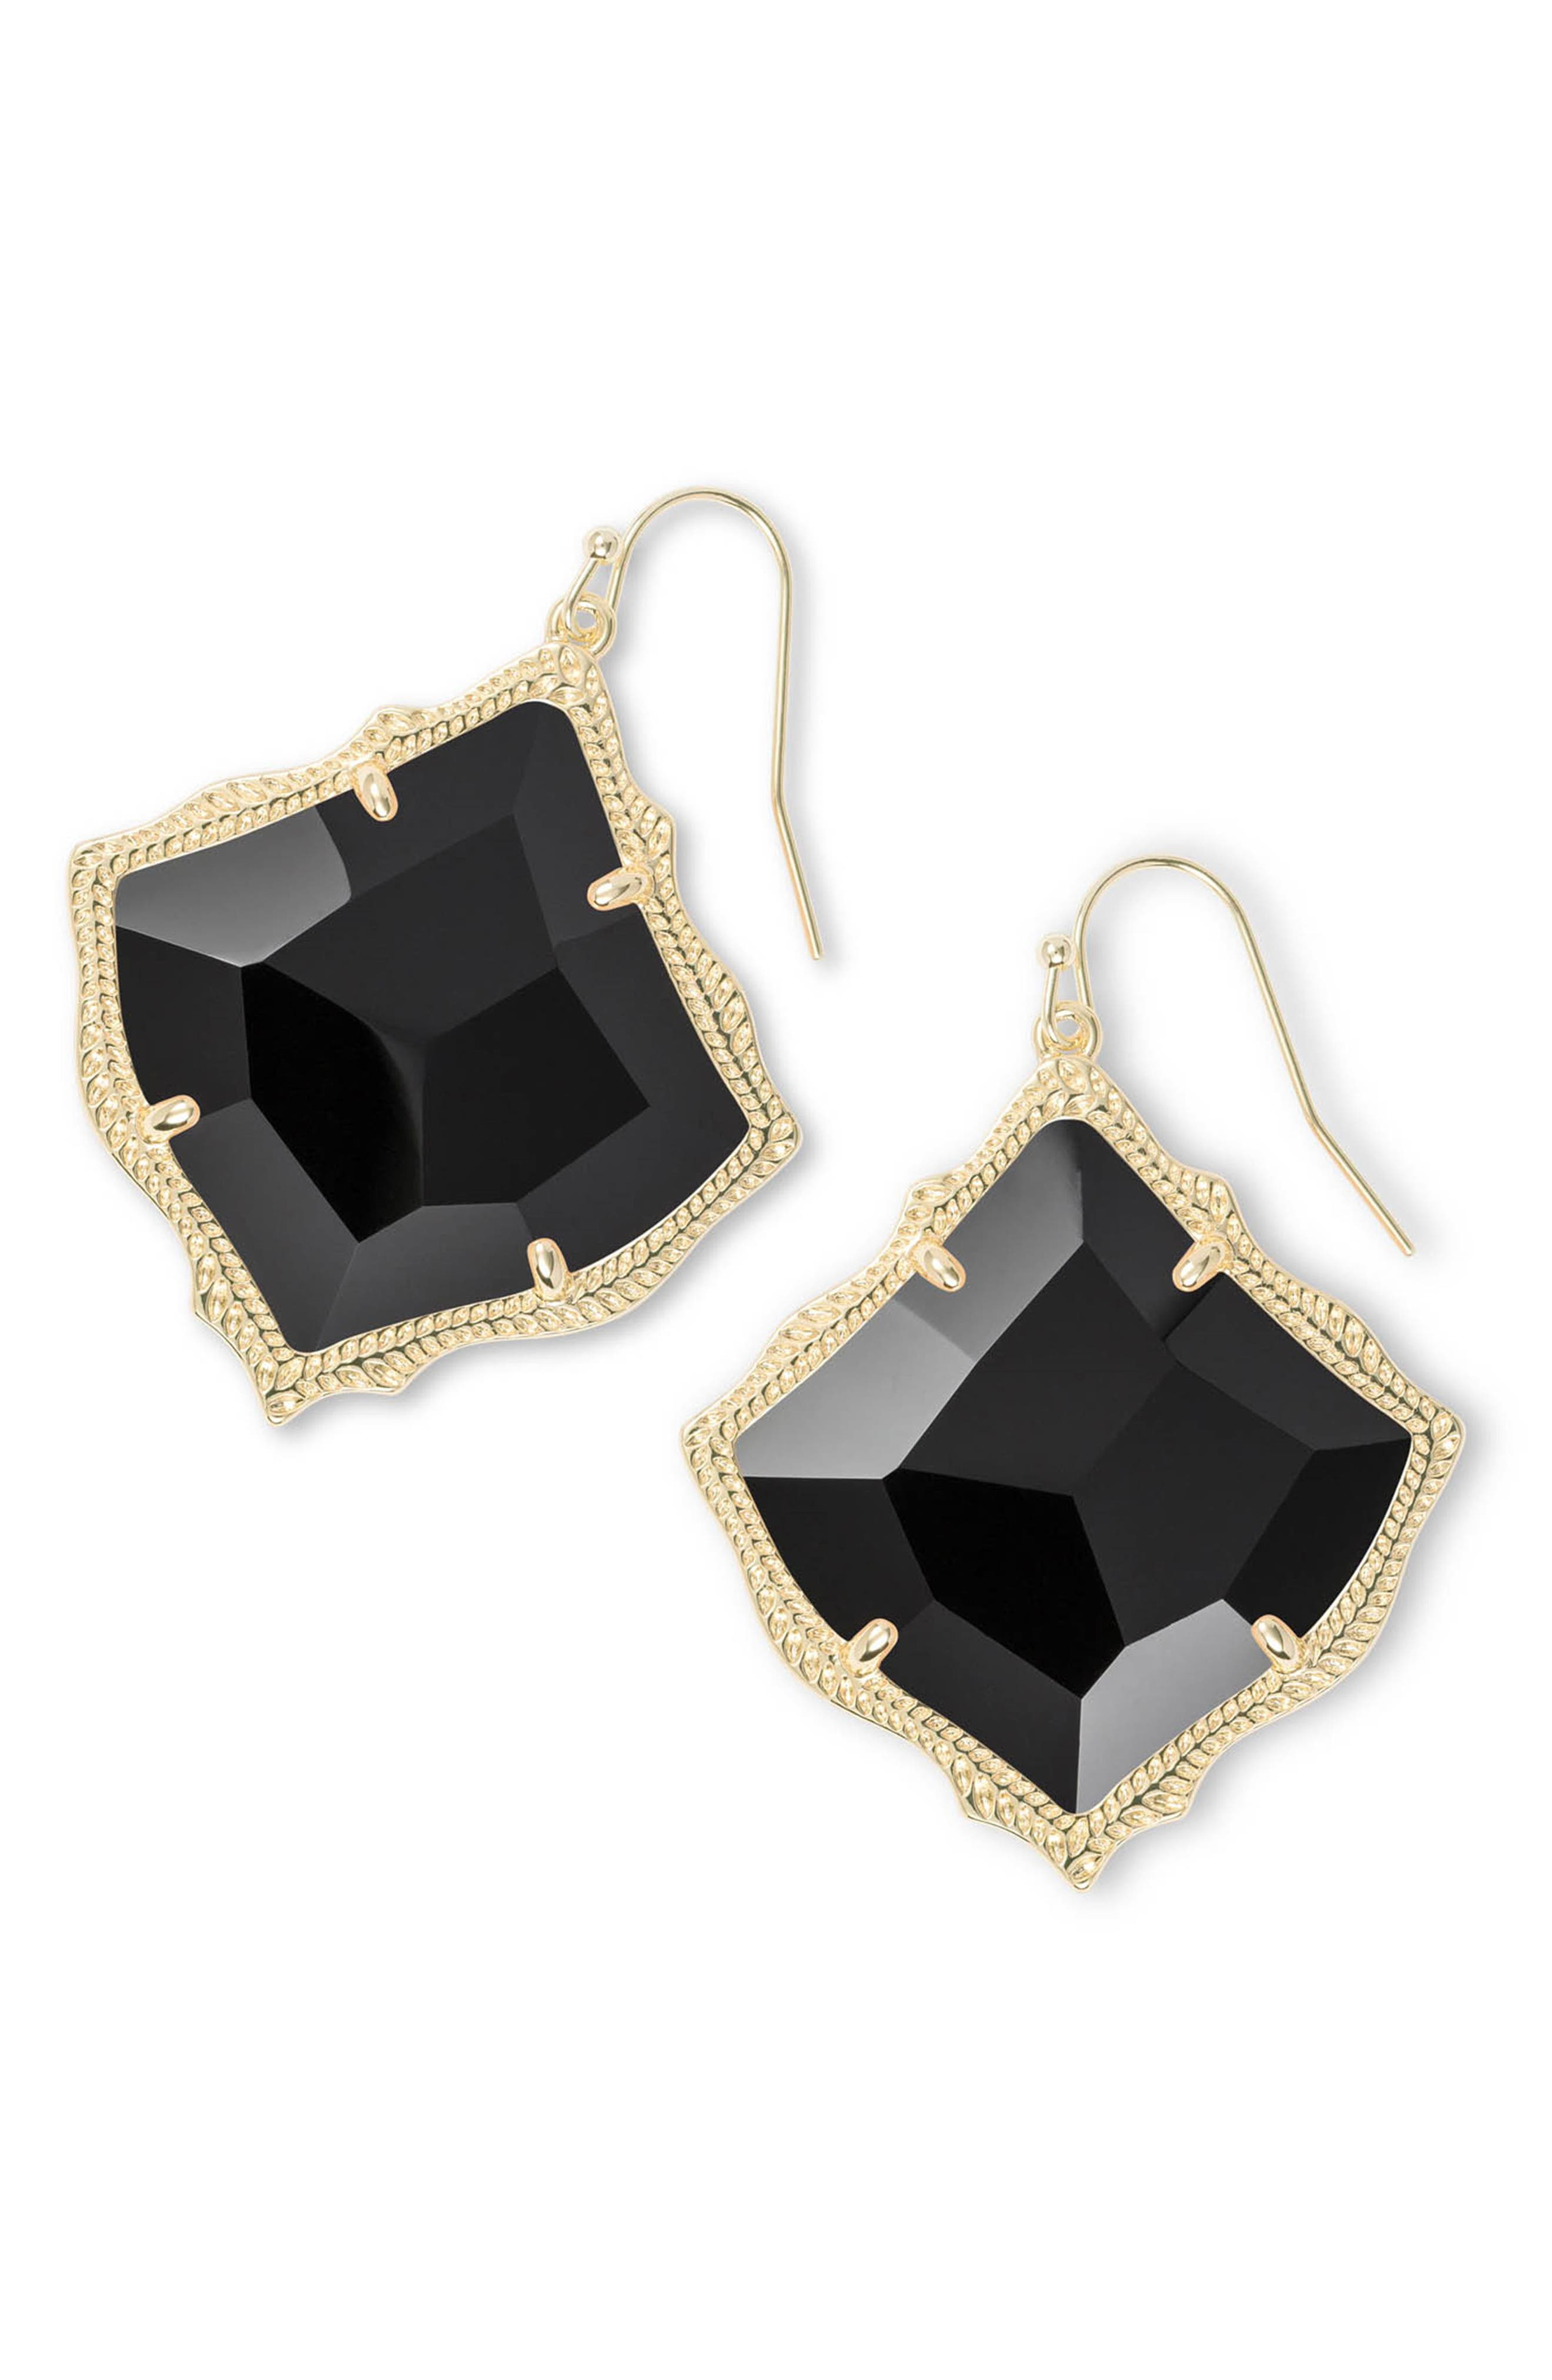 Kirsten Drop Earrings,                             Main thumbnail 1, color,                             BLACK OPAQUE GLASS/ GOLD